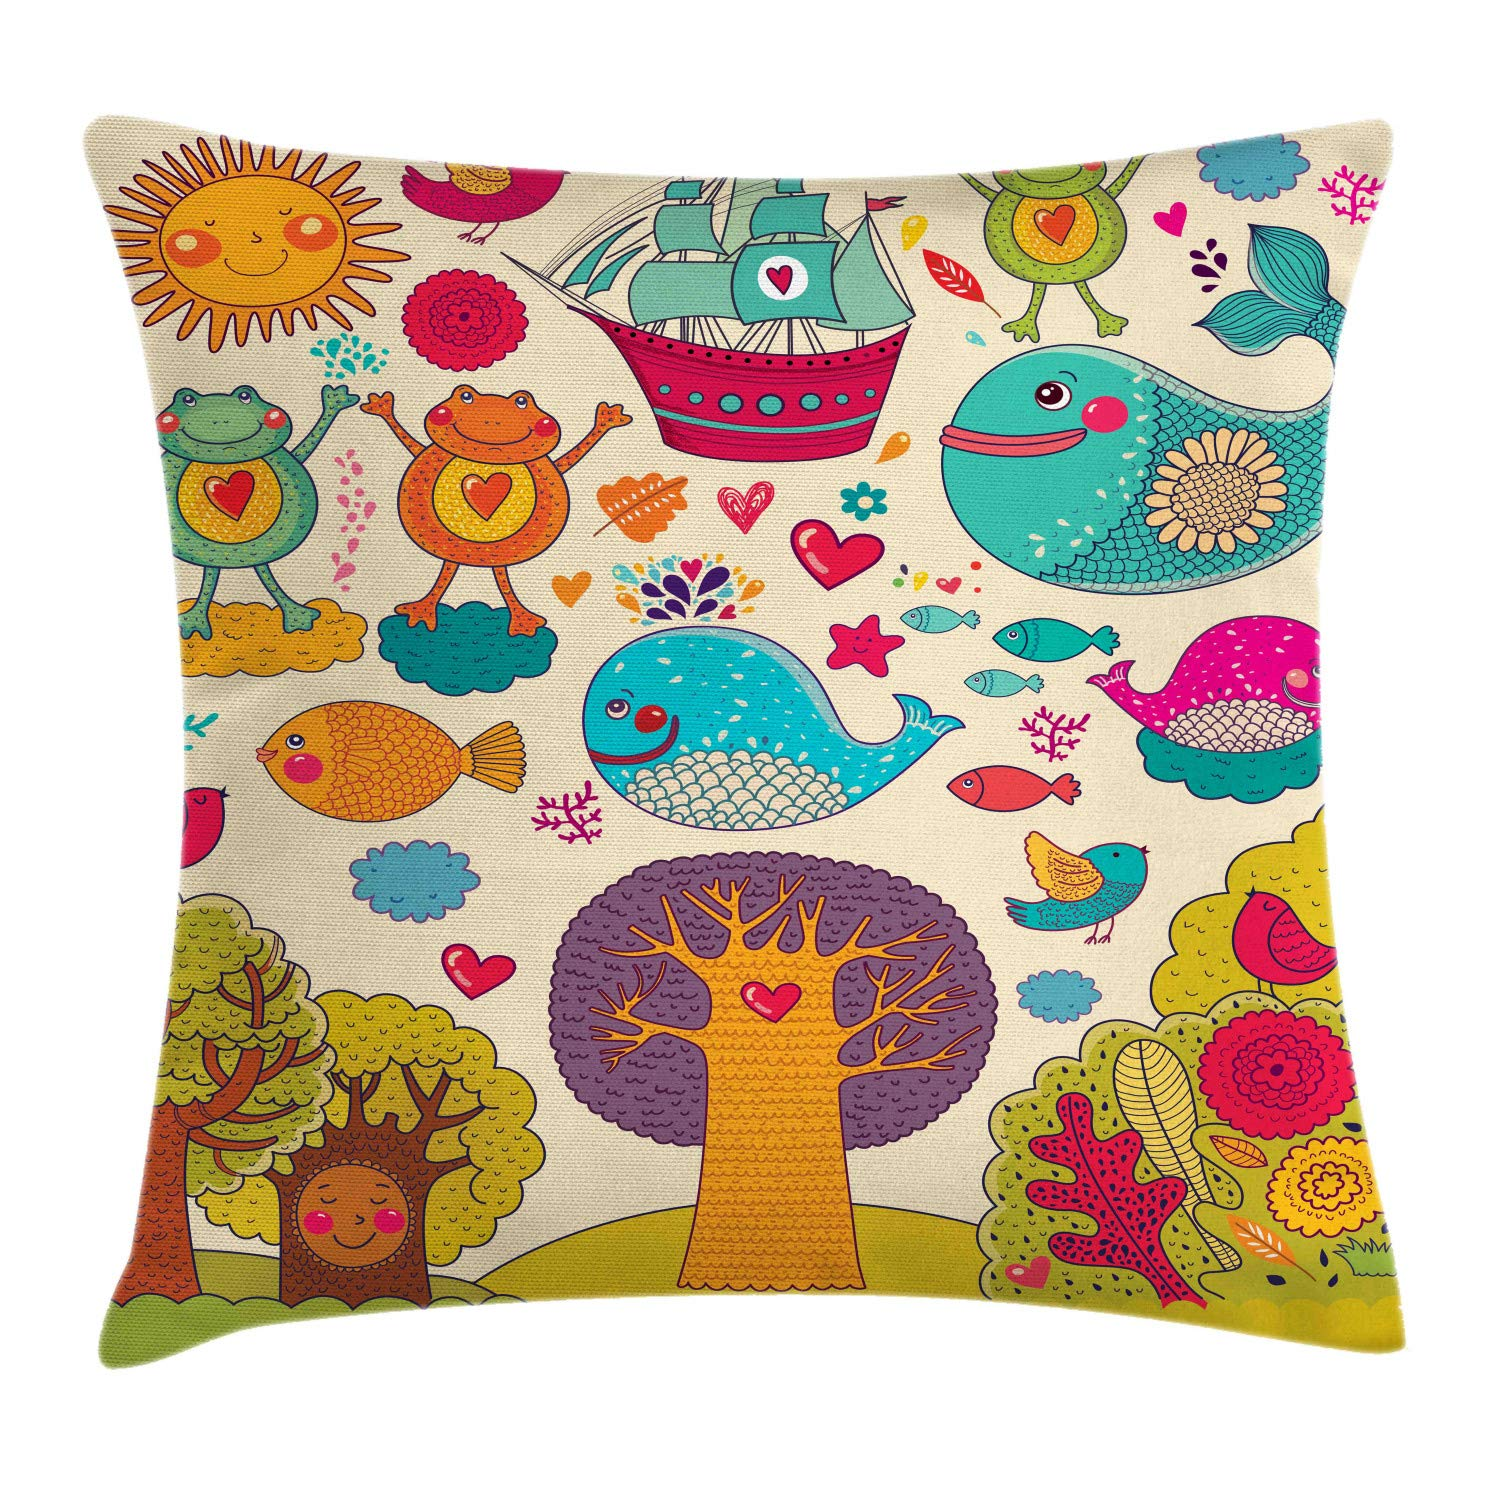 Lunarable Nursery Throw Pillow Cushion Cover, Funny Wildlife Illustration with Forest Animals Trees Clouds Hearts and a Ship, Decorative Square Accent Pillow Case, 24'' X 24'', Multicolor by Lunarable